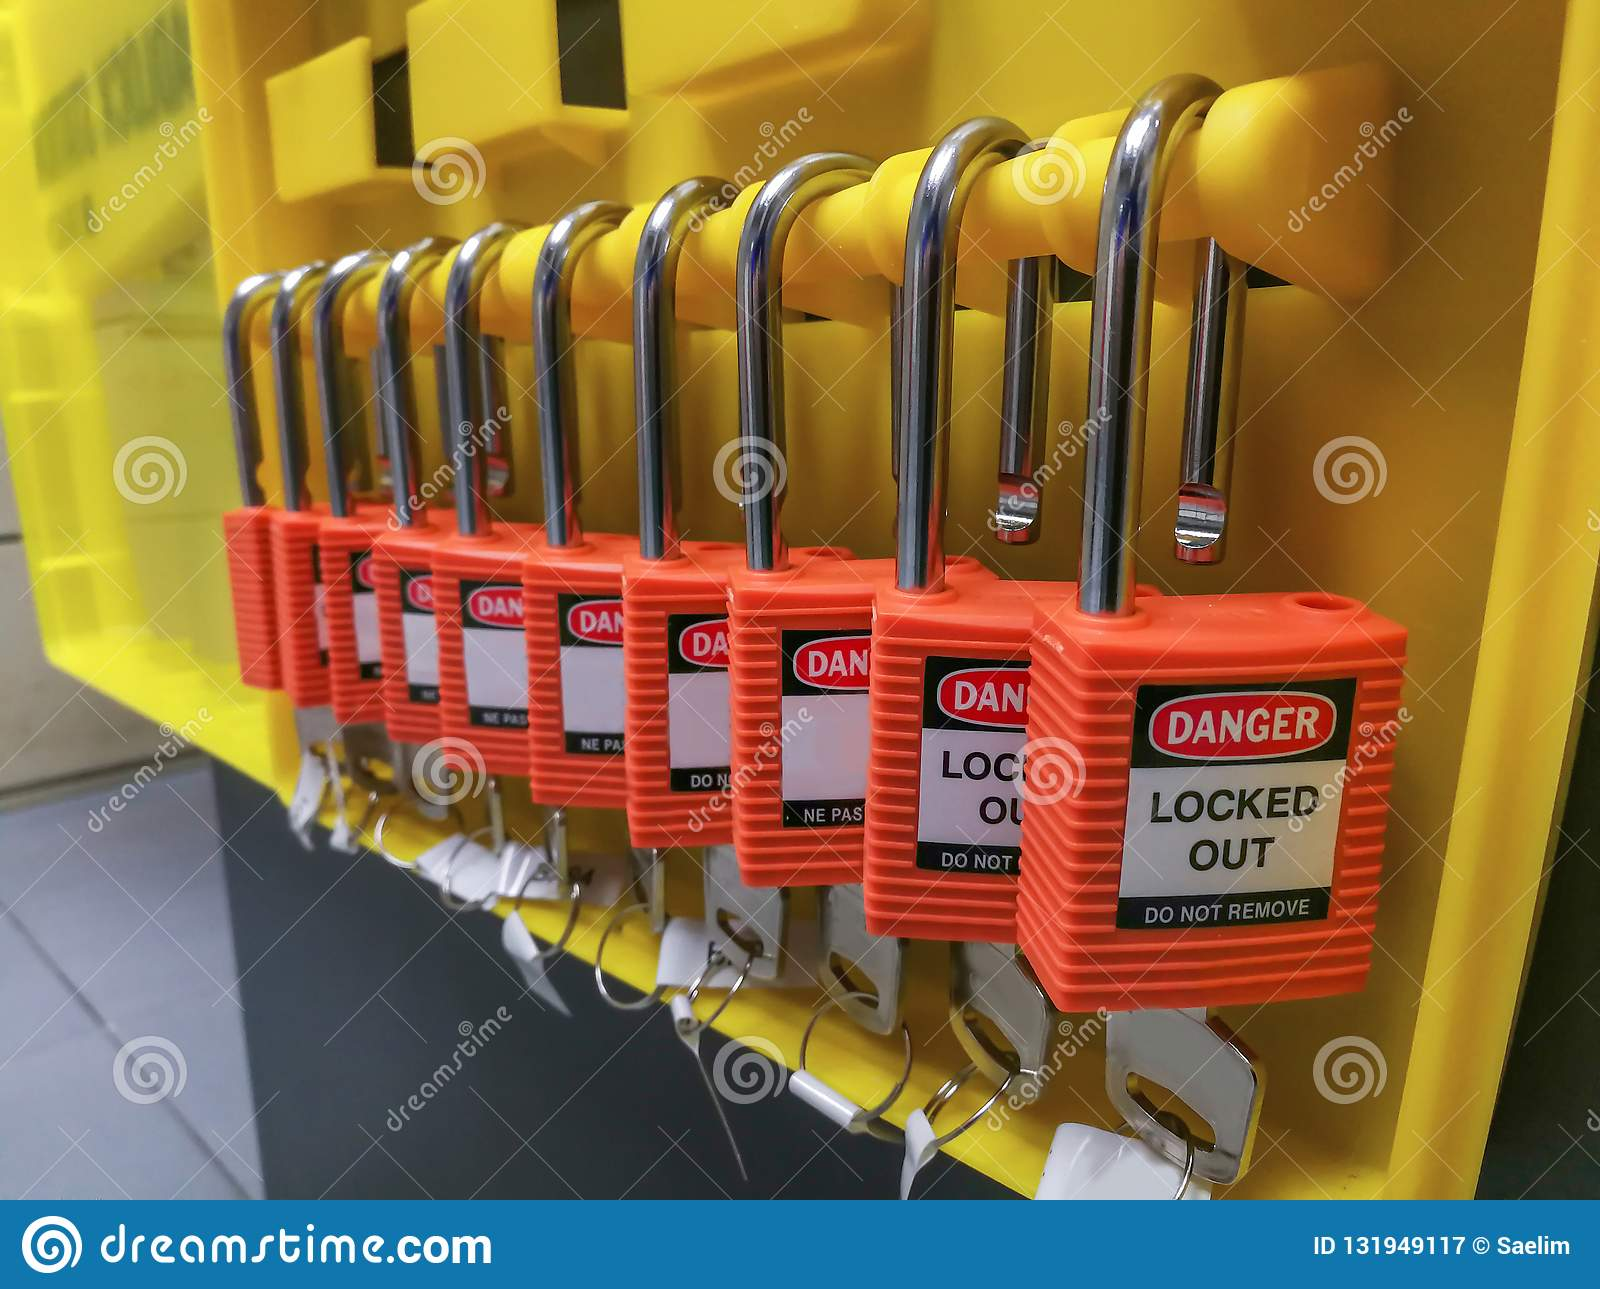 Red key lock and tag for process cut off electrical,the toggle t